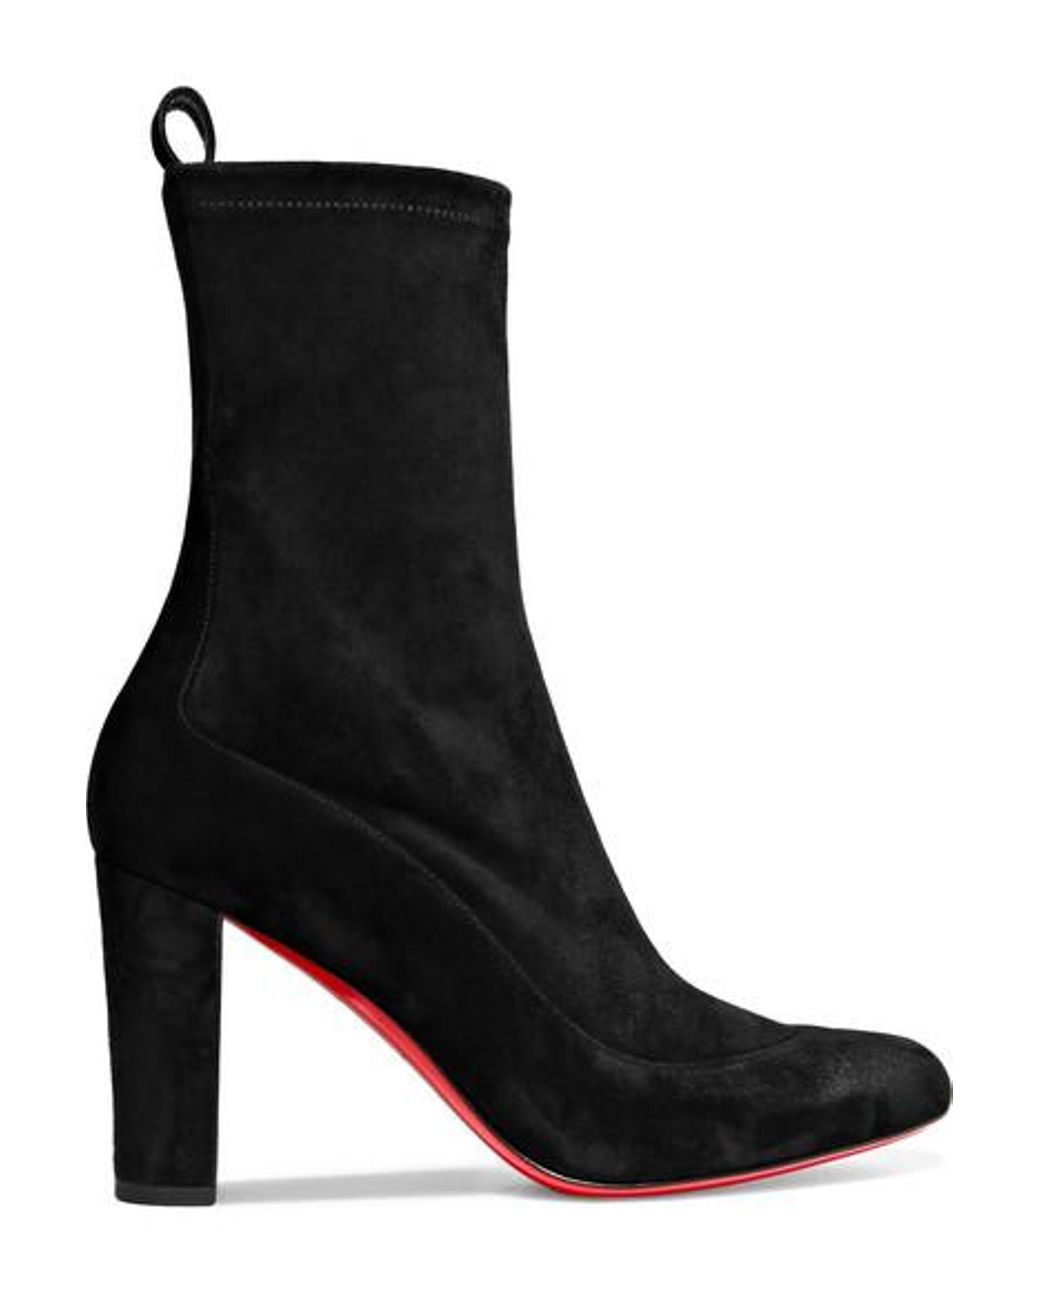 free shipping 89cf8 a2107 Women's Black Gena 85 Suede Ankle Boots